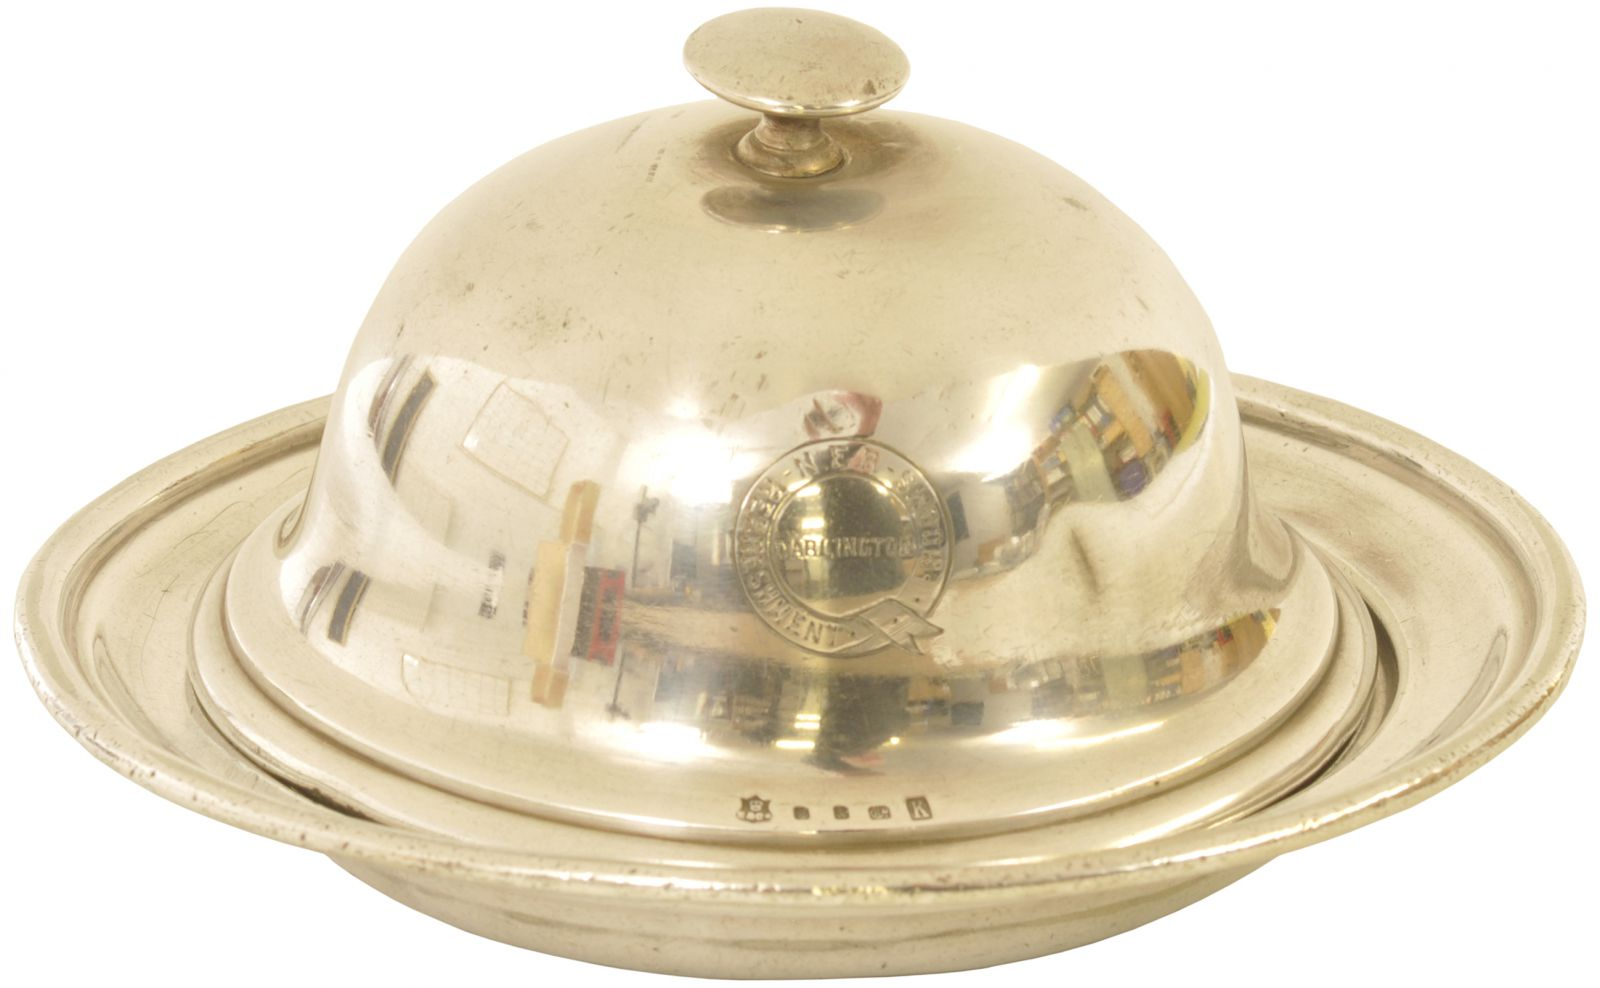 Lot 9 - Silverware, NER Darlington Muffin Dish: An N.E.R. REFRESHMENT ROOMS, DARLINGTON, silver plated